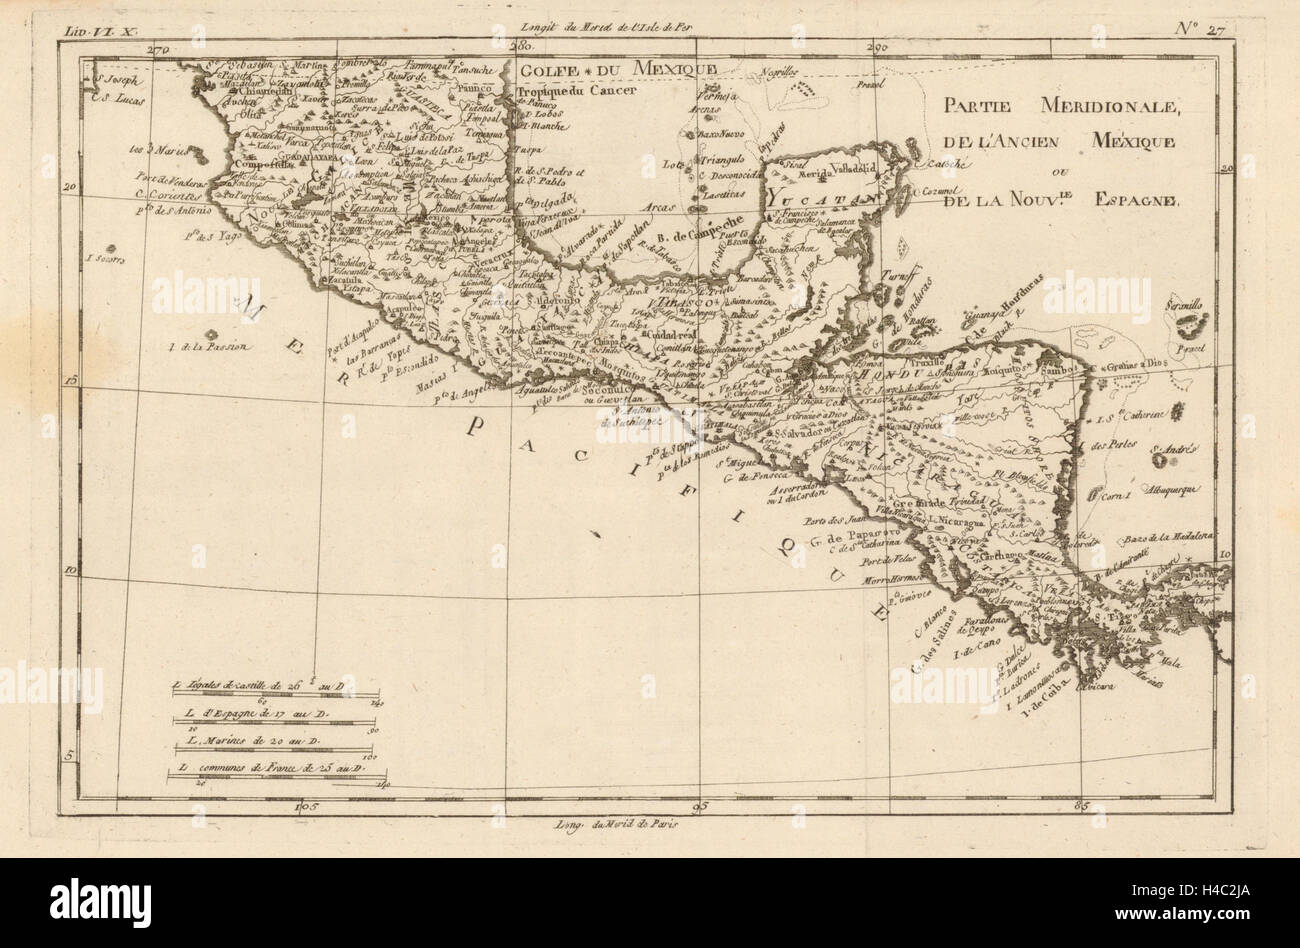 'Partie Meridionale, de L'Ancien Mexique…' by Rigobert Bonne. Mexico c1783 map - Stock Image